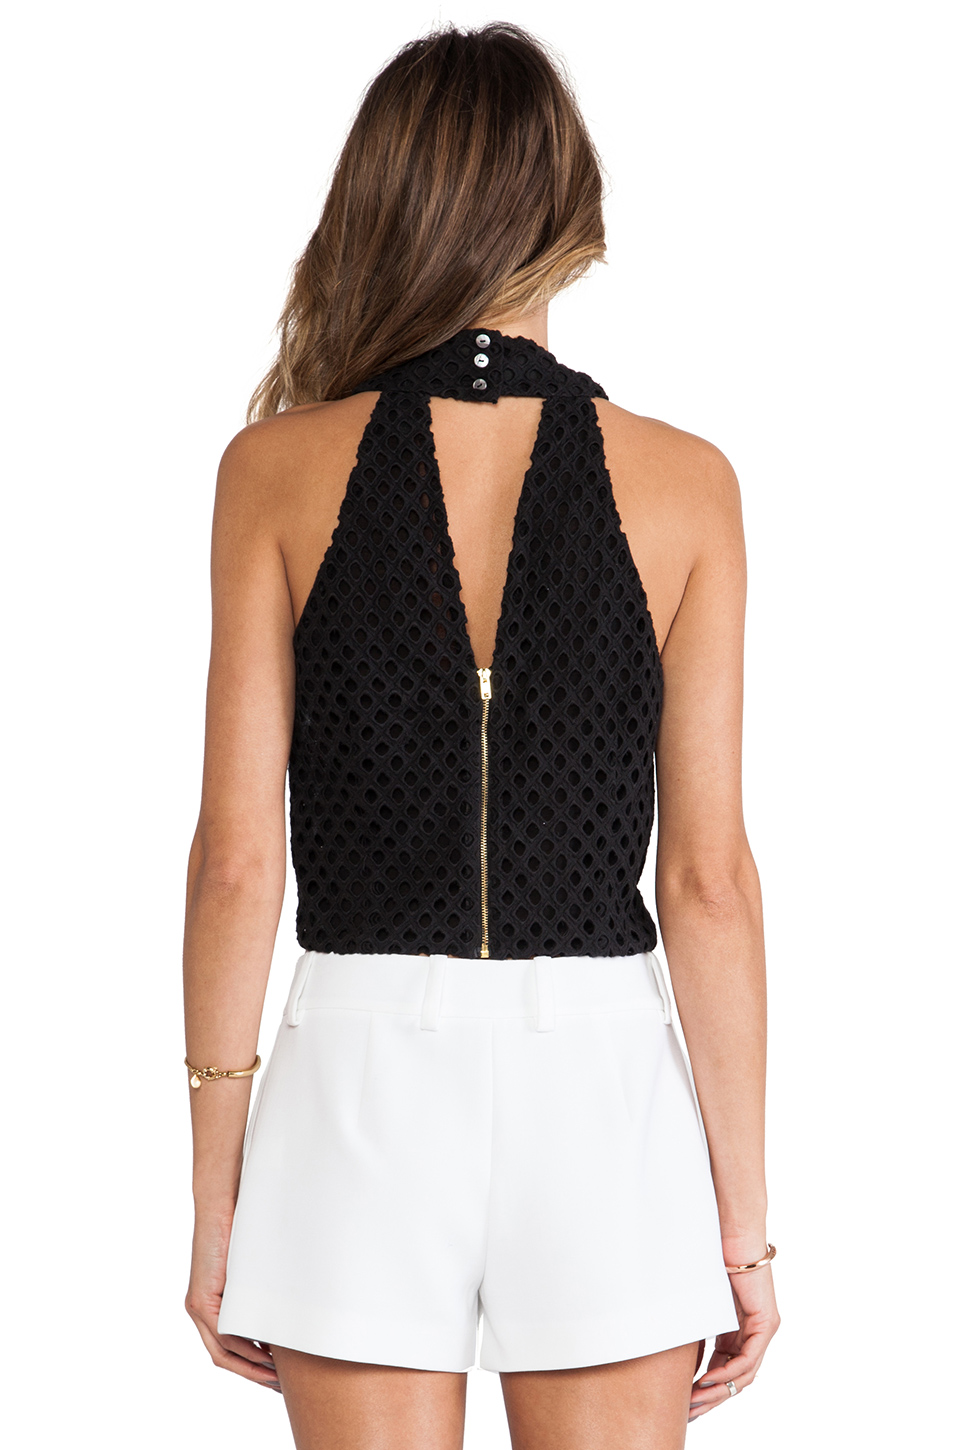 Line & Dot Crossover Neck Eyelet Top in Black from REVOLVEclothing.com